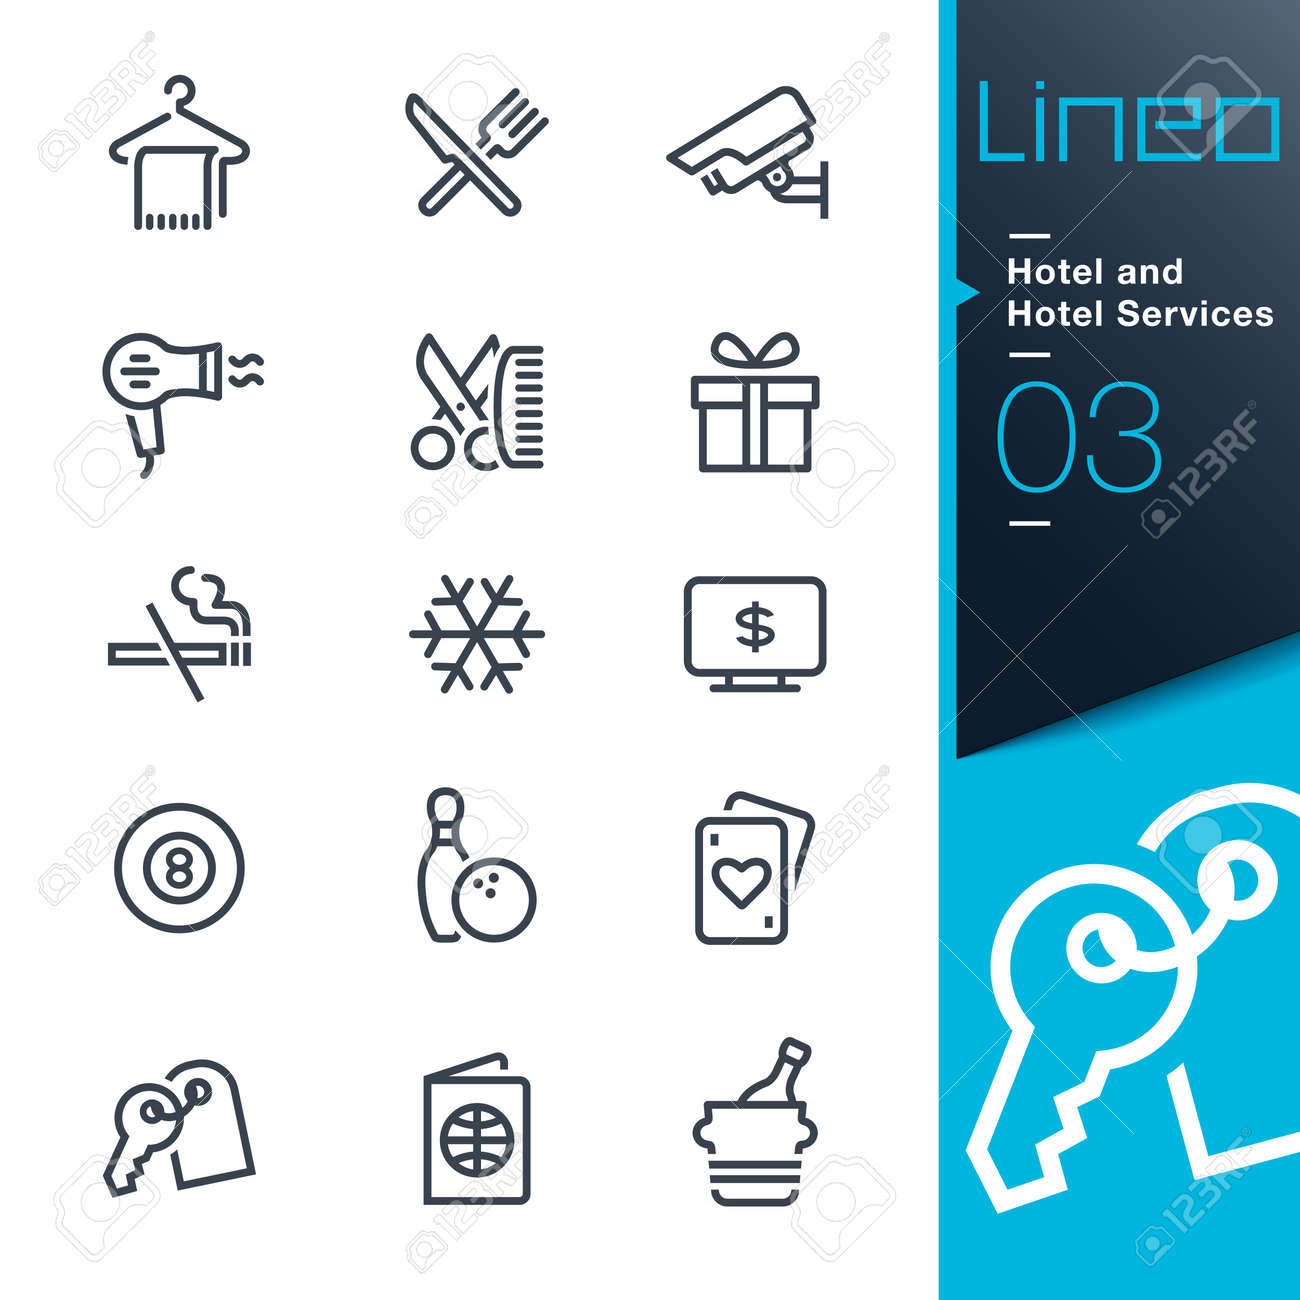 Lineo - Hotel and Hotel Services outline icons Banque d'images - 27483554